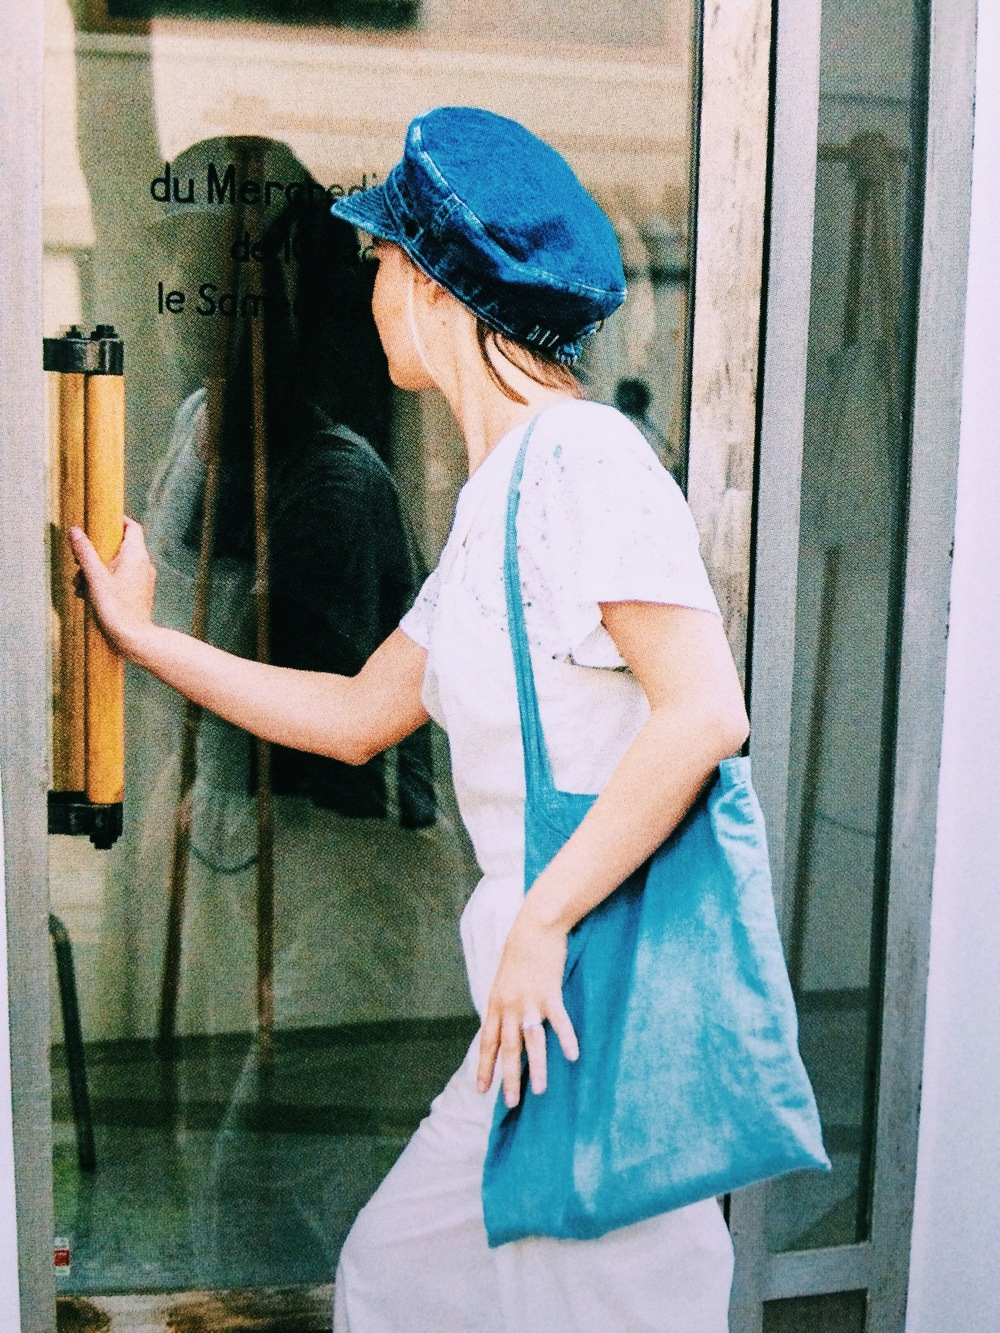 This girl is so cute. I don't normally like this style hat, but she pulls it off. The blue denims work so well with the while coverall and tee. Good for relaxed day time.